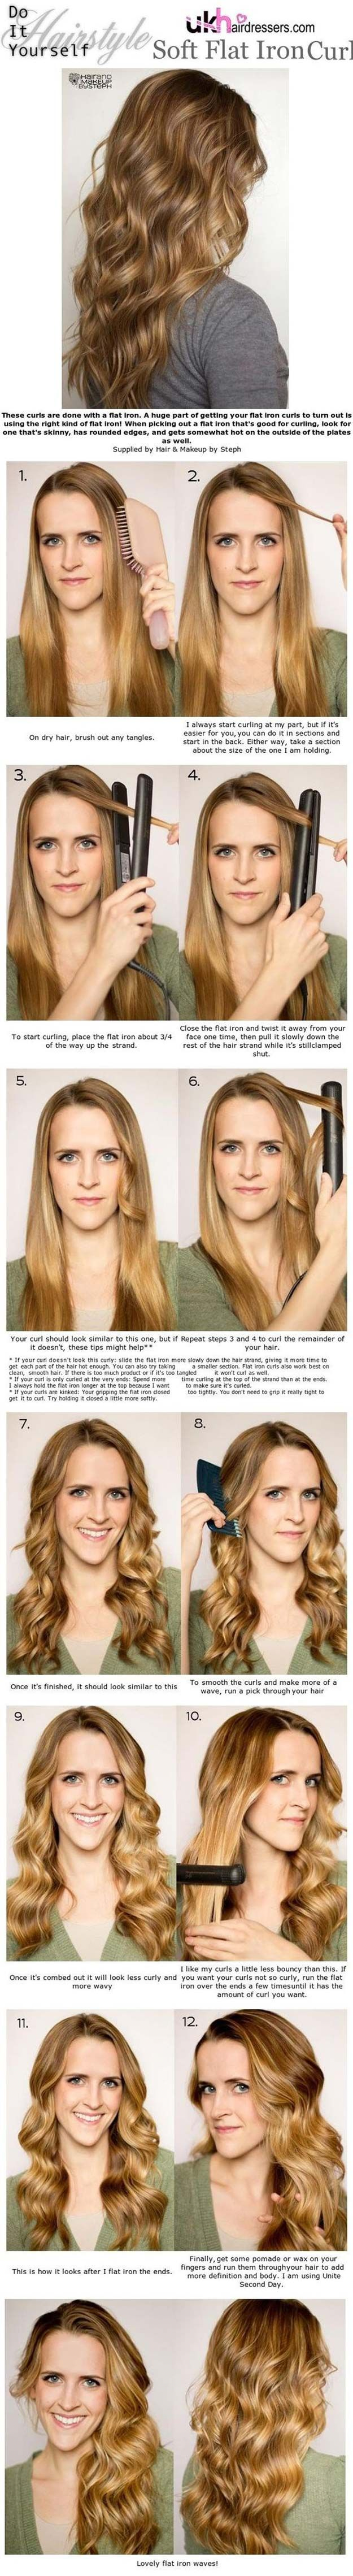 Cool Hairstyles You Can Do With Your Flat Iron Soft Flat Iron Curls Easy Step By Step Tutorials And Hair Tips Hair Styles Flat Iron Curls Curly Hair Styles